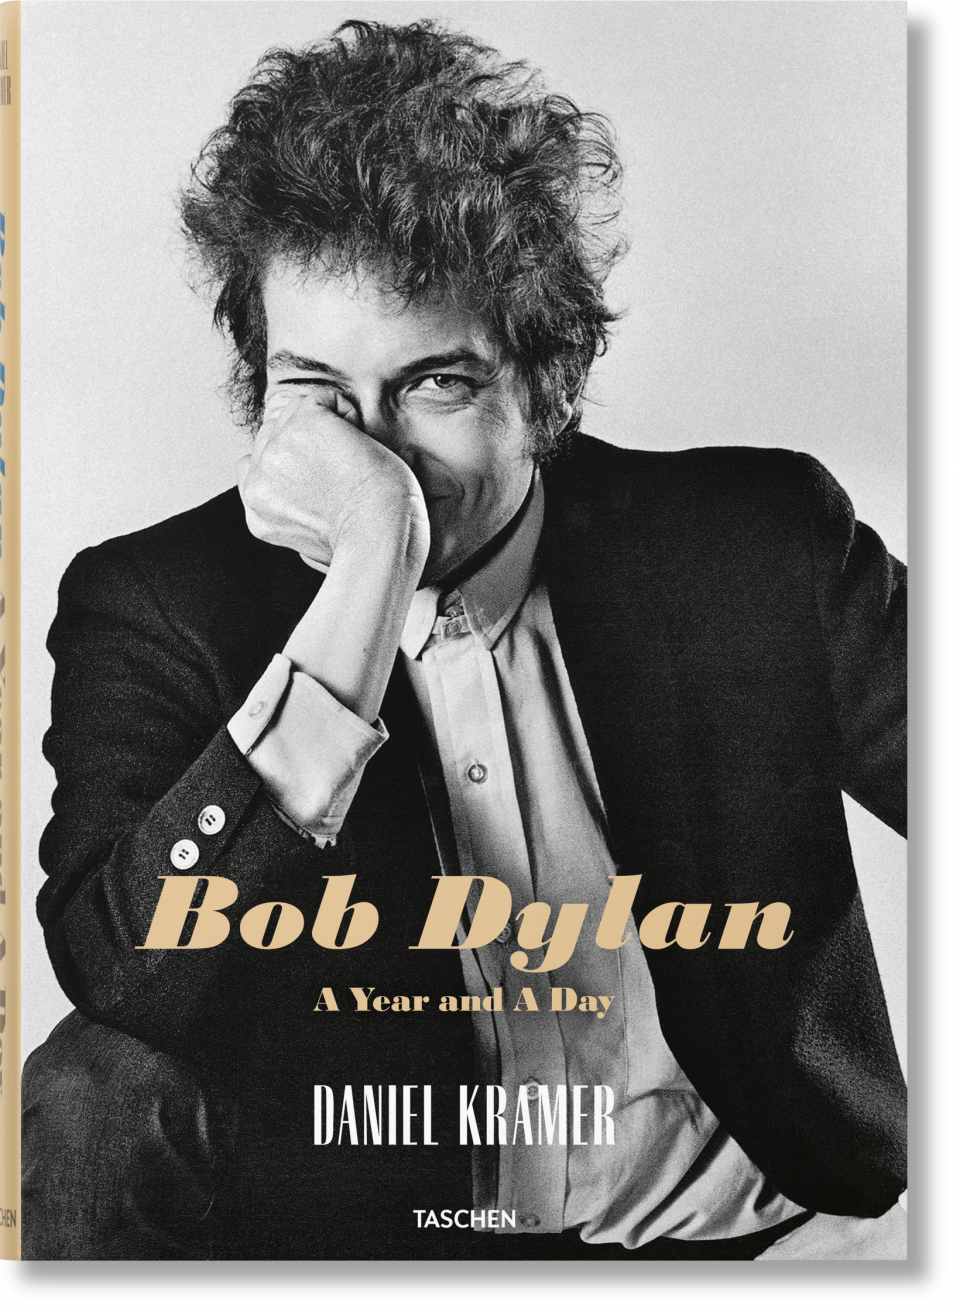 Bob Dylan: A Year and a Day, de D. Kramer, éd. Taschen